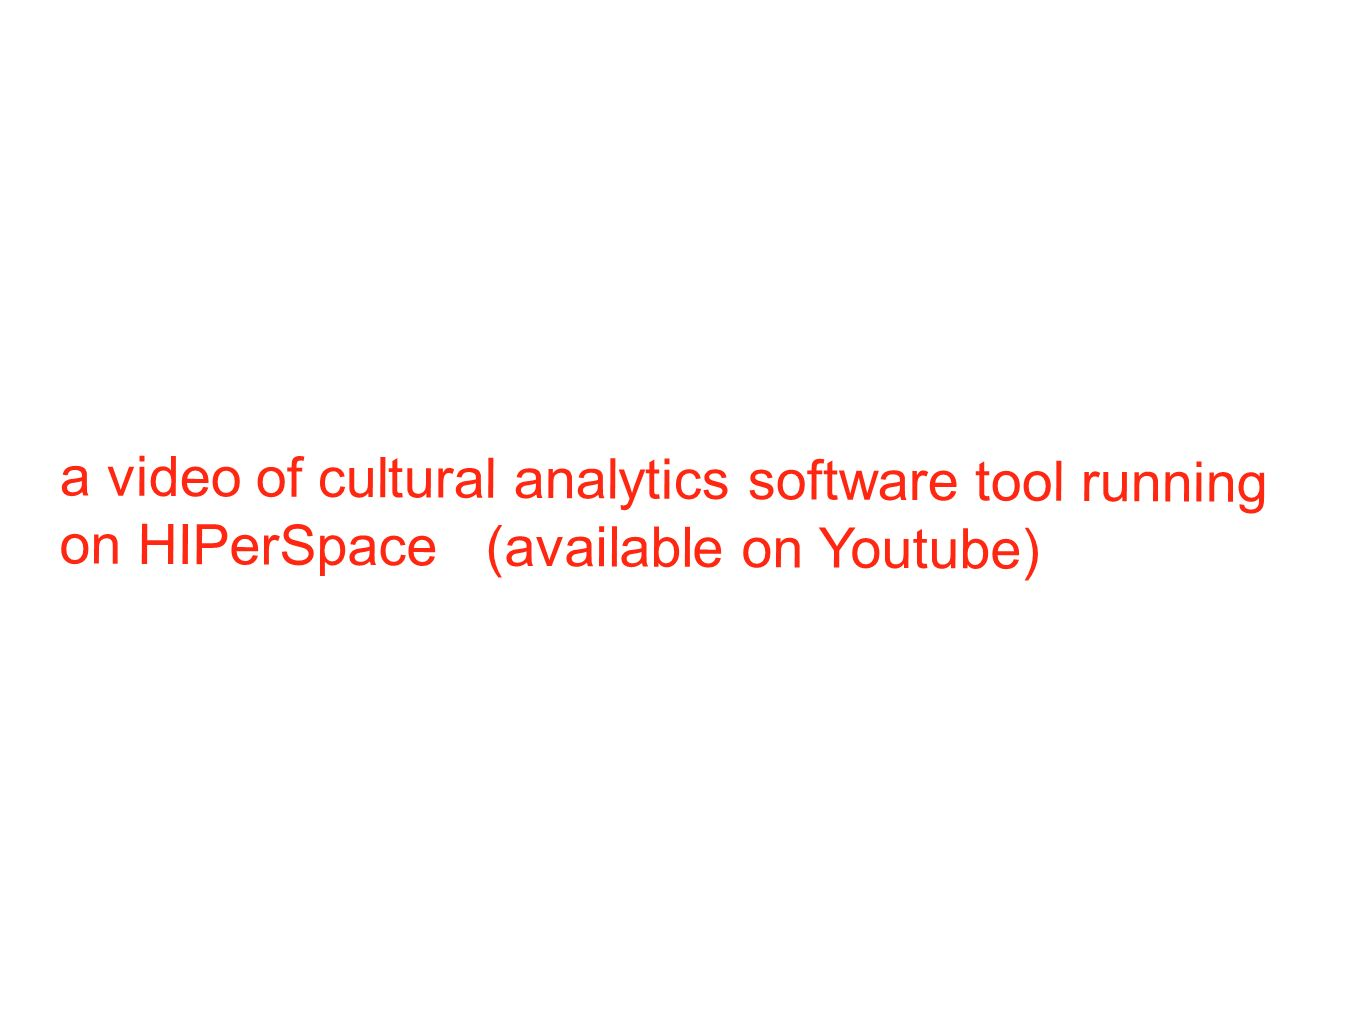 a video of cultural analytics software tool running on HIPerSpace (available on Youtube)